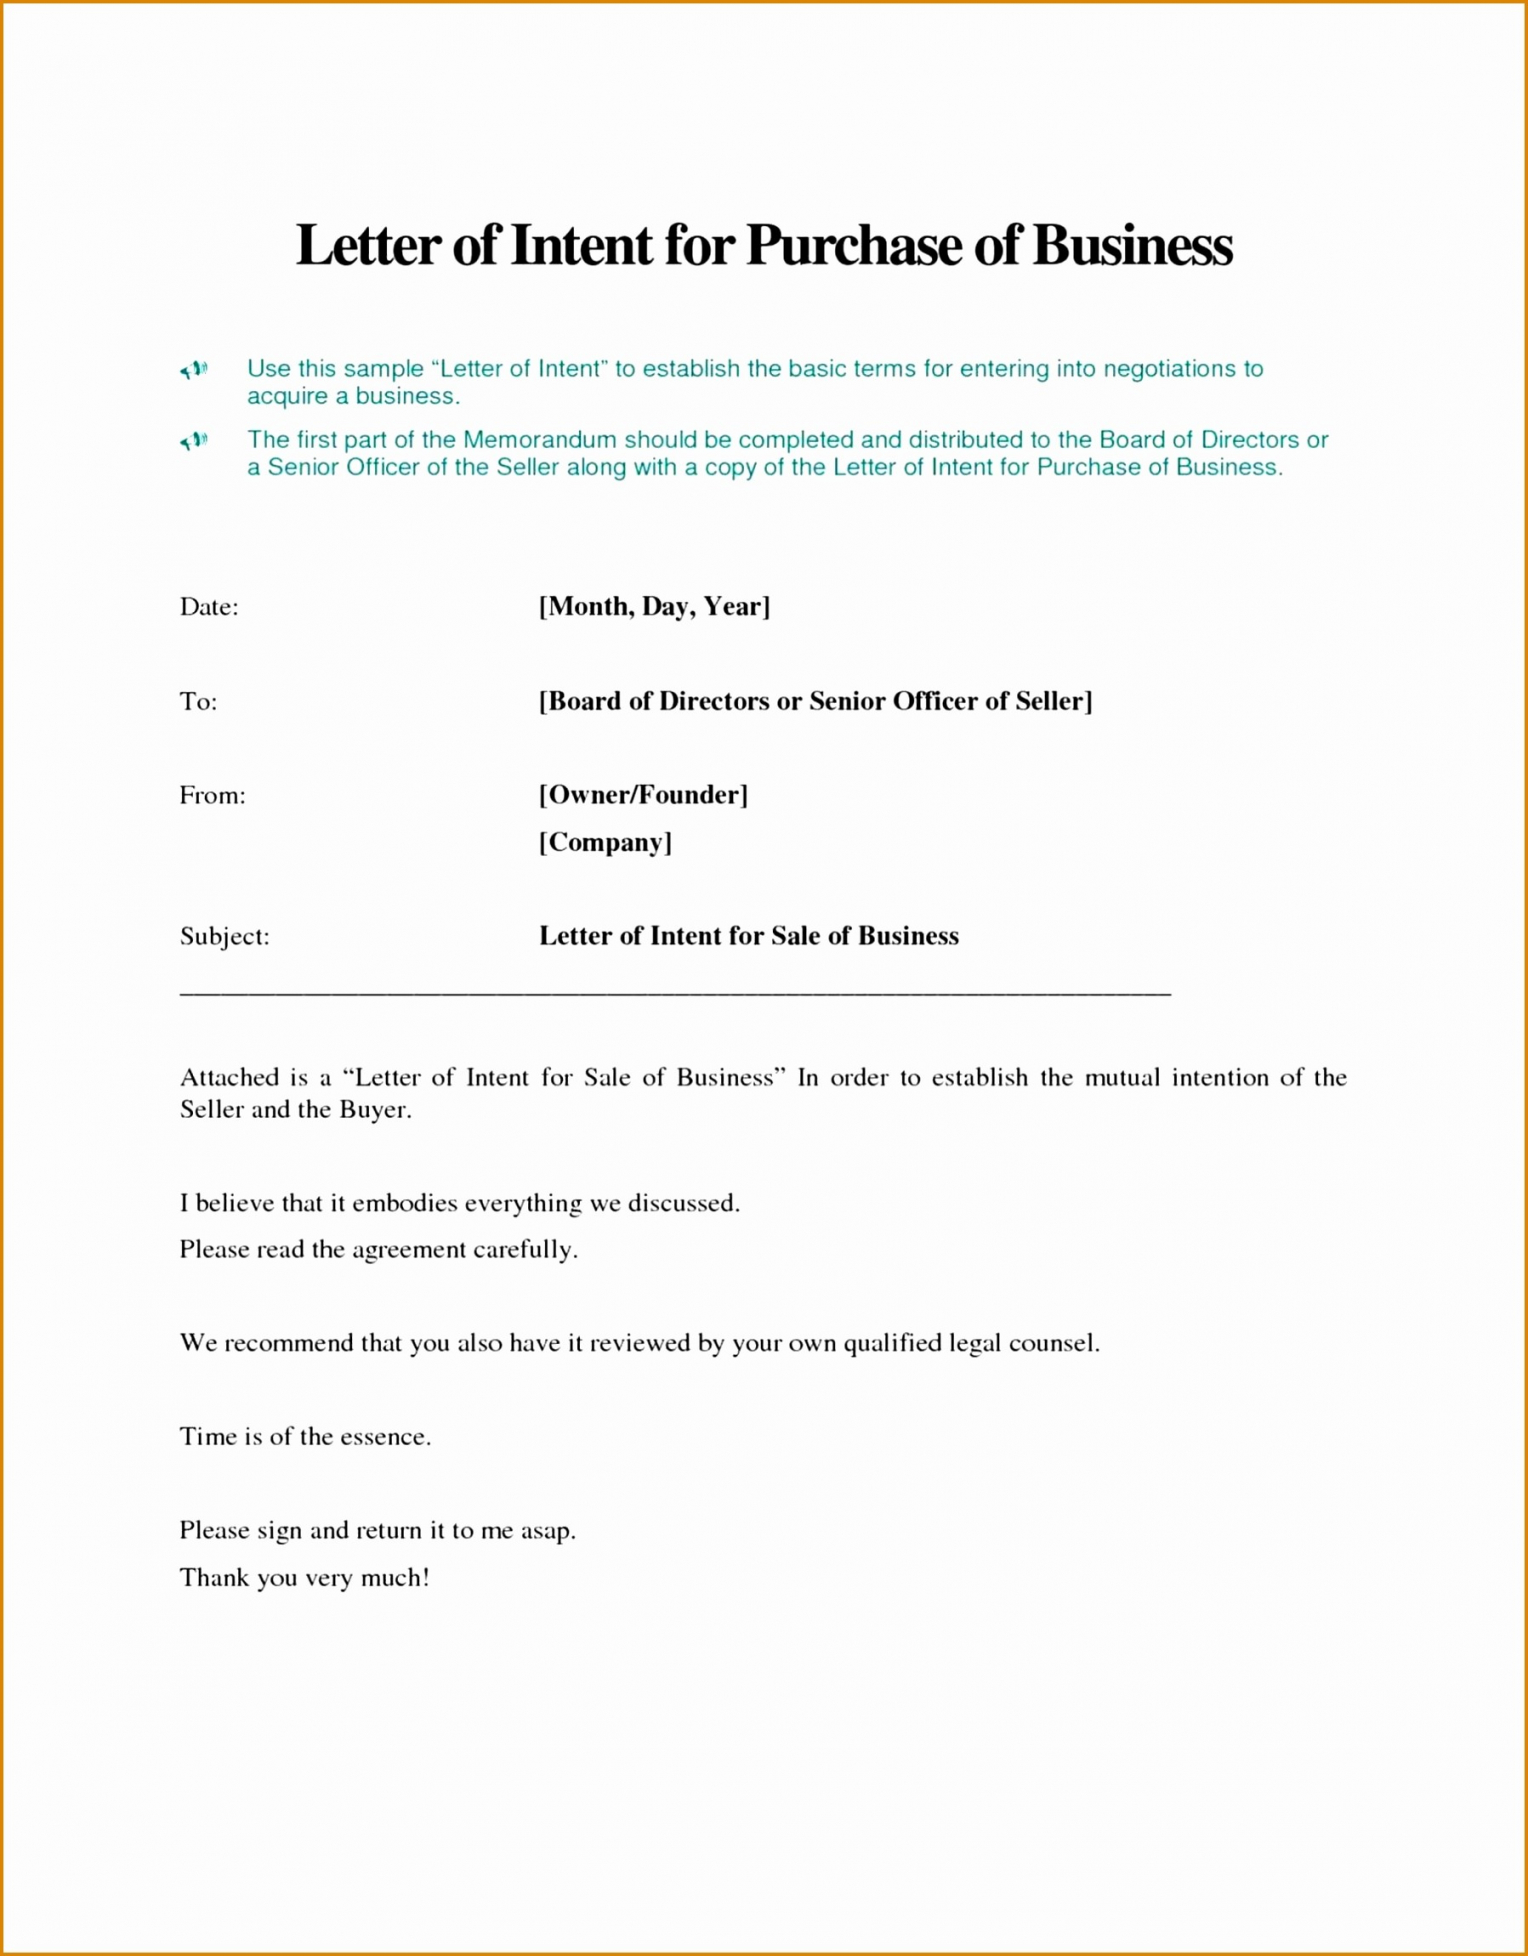 here the letter of intent formats new template besttemplates real estate franchise letter of intent template